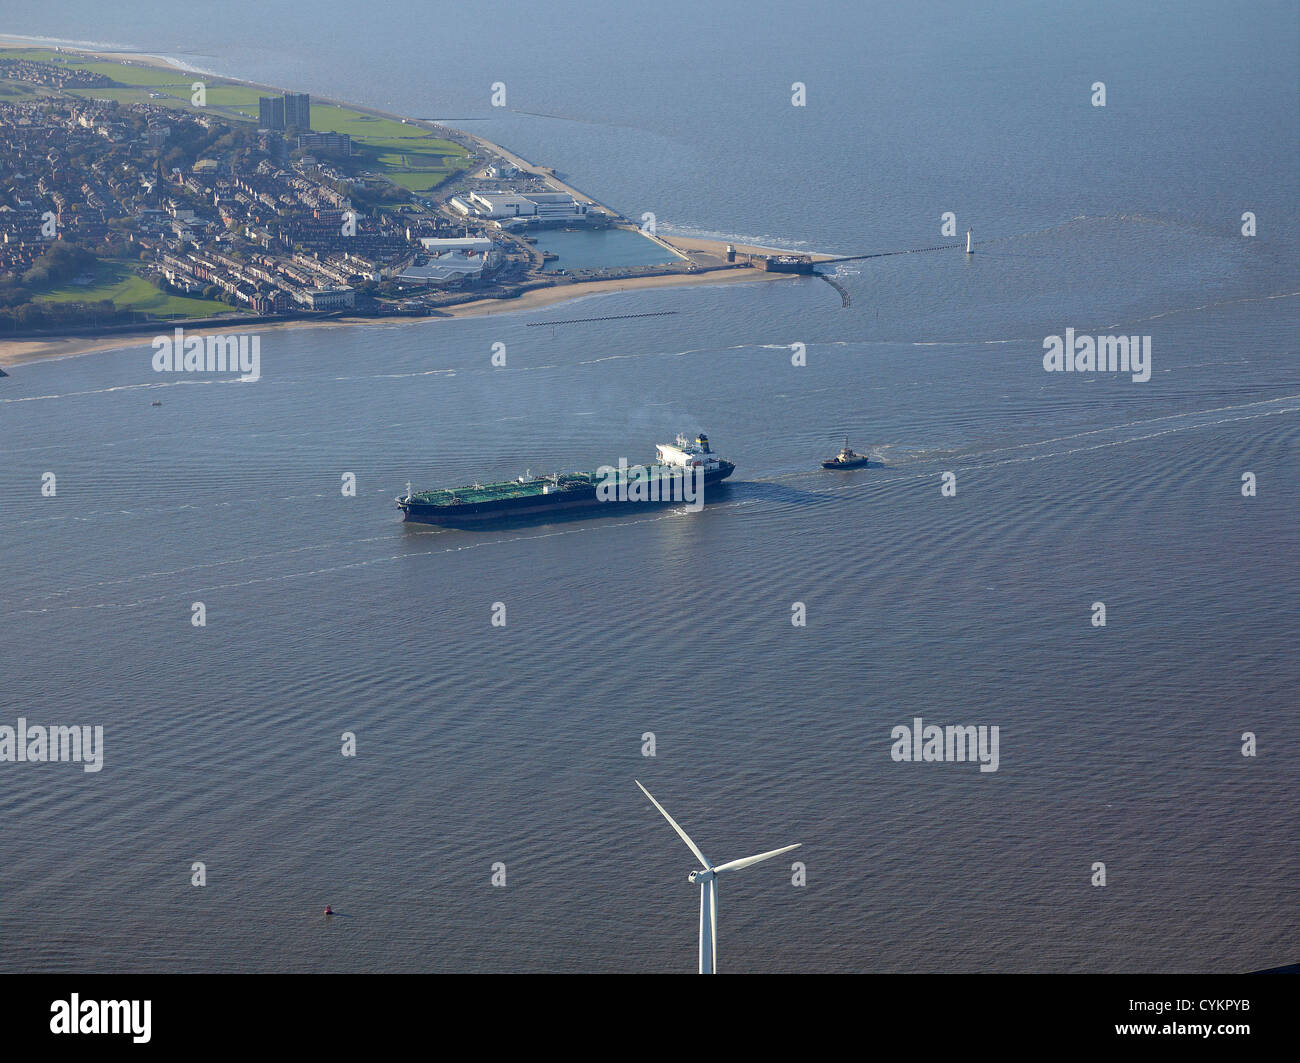 Oil tanker entering at the mouth of the River Mersey, North West England, UK with the Wirral behind - Stock Image